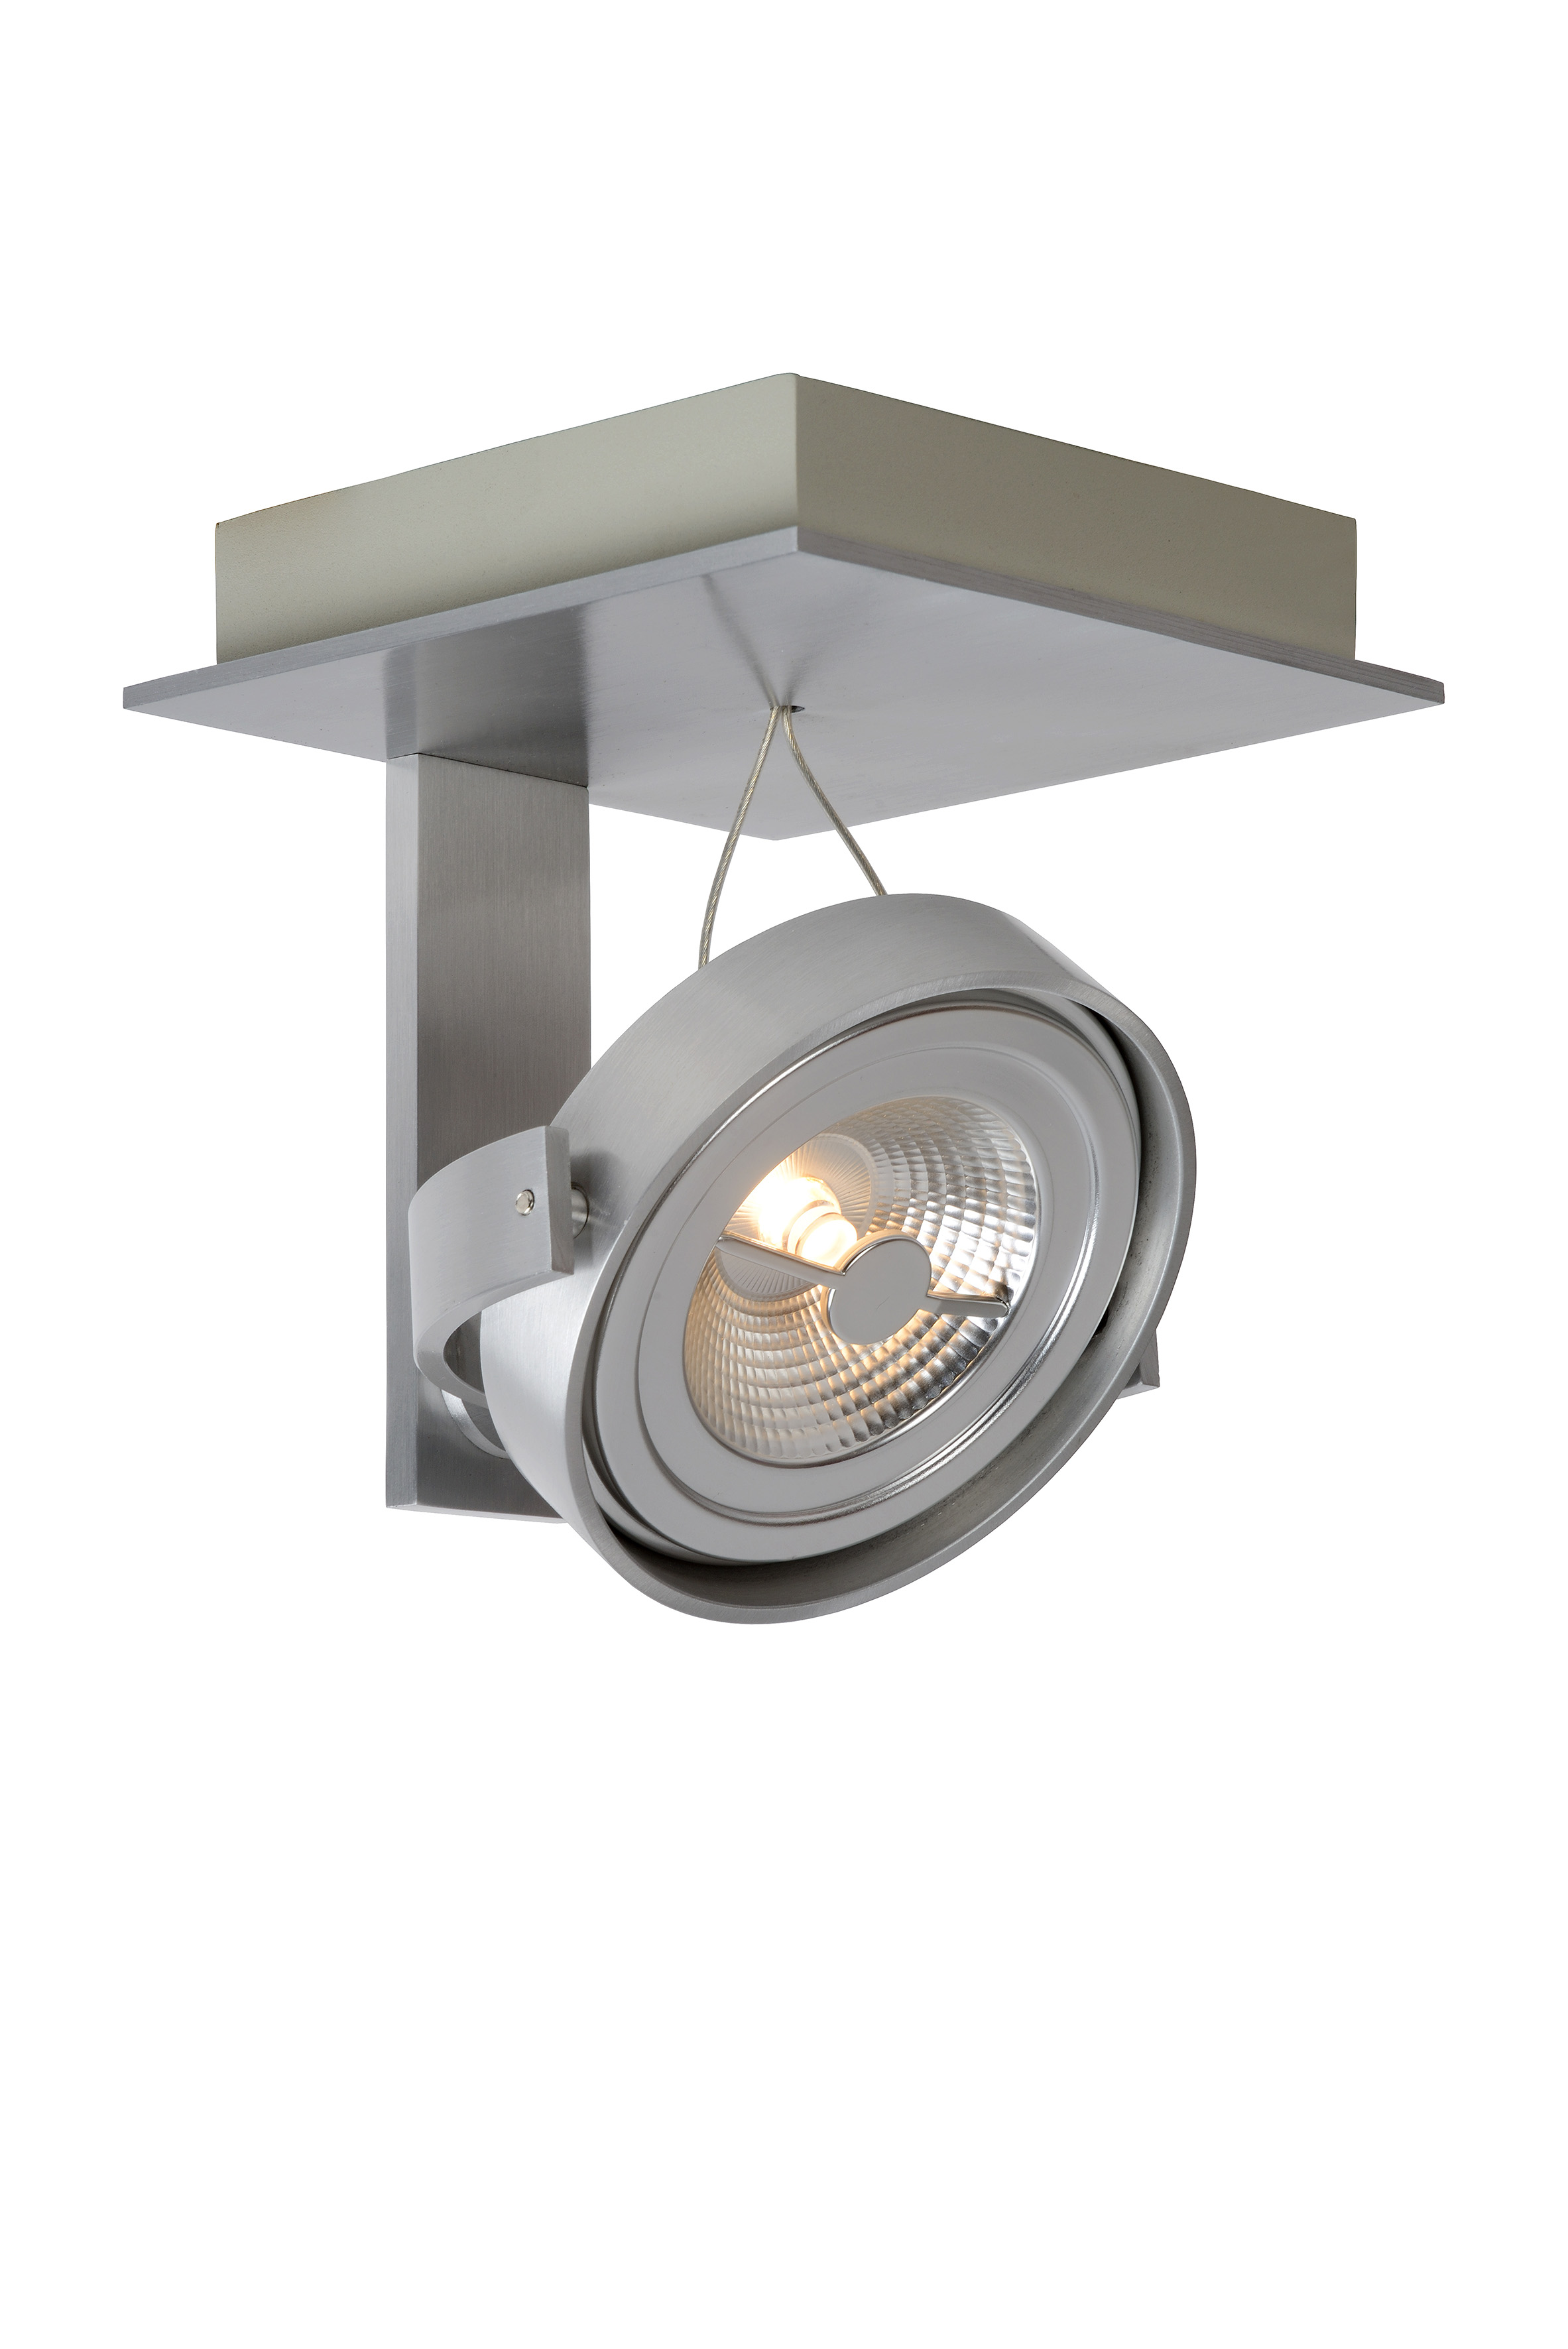 Lucide Spectrum LED spotlamp